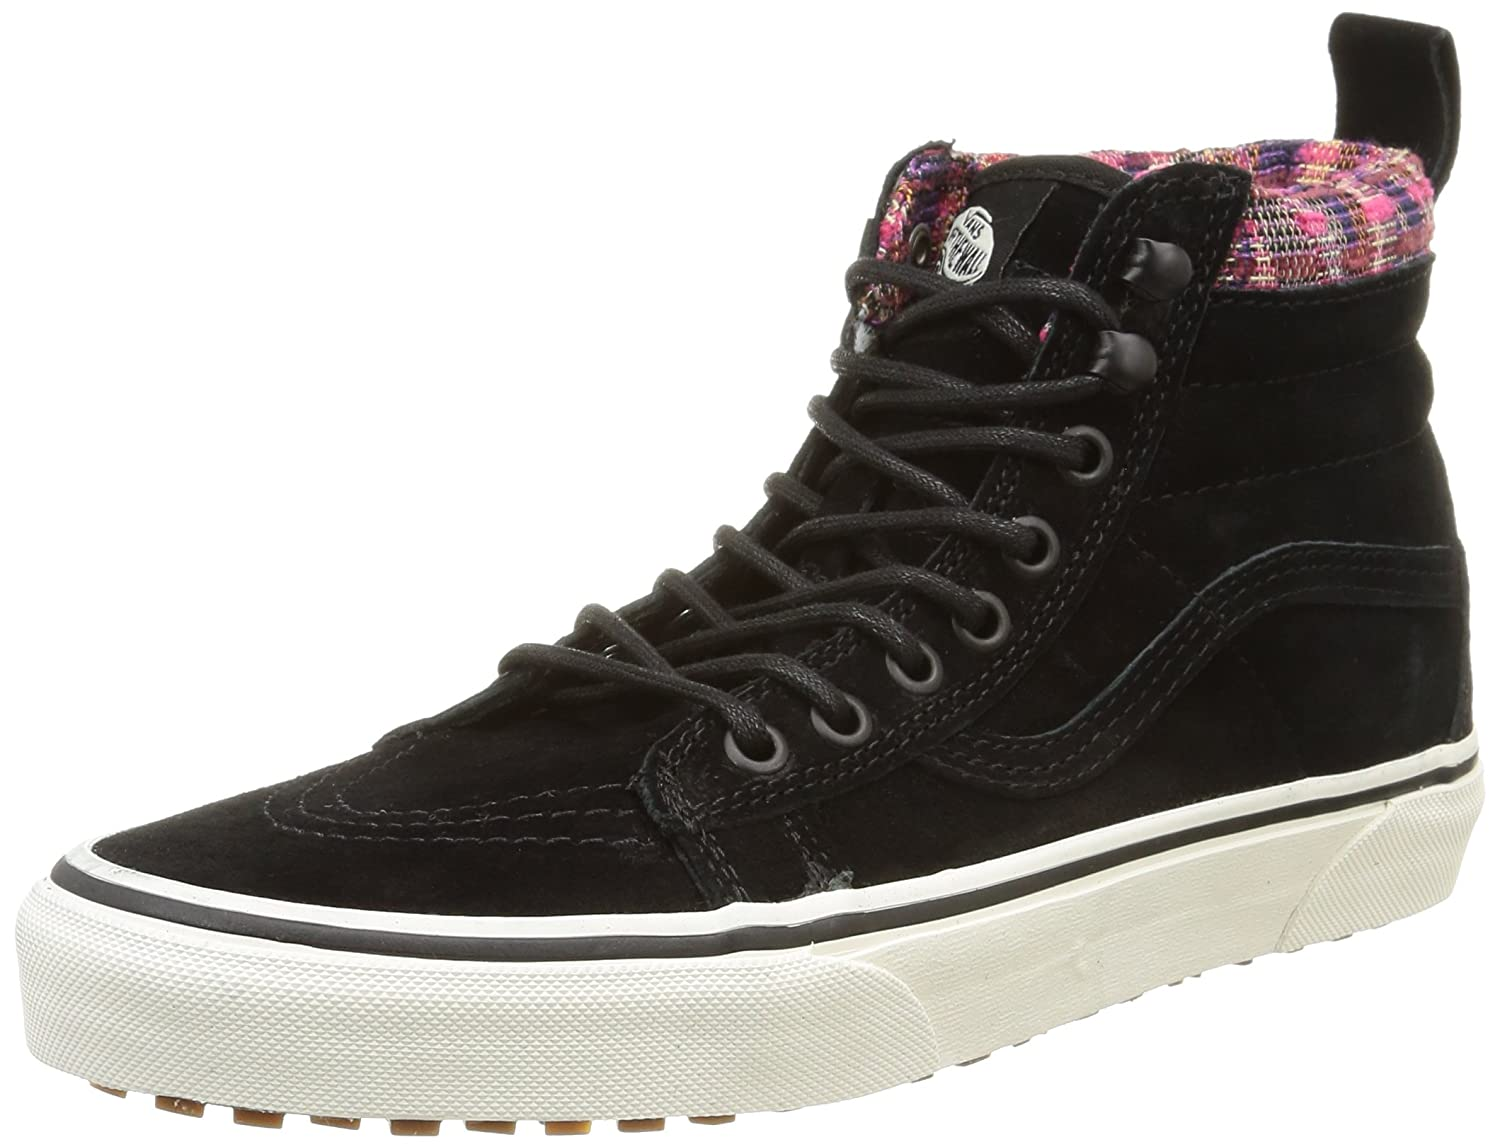 7556d6a7c9 Vans Sk8-hi Unisex Adults Hi-Top Sneakers  Amazon.co.uk  Shoes   Bags